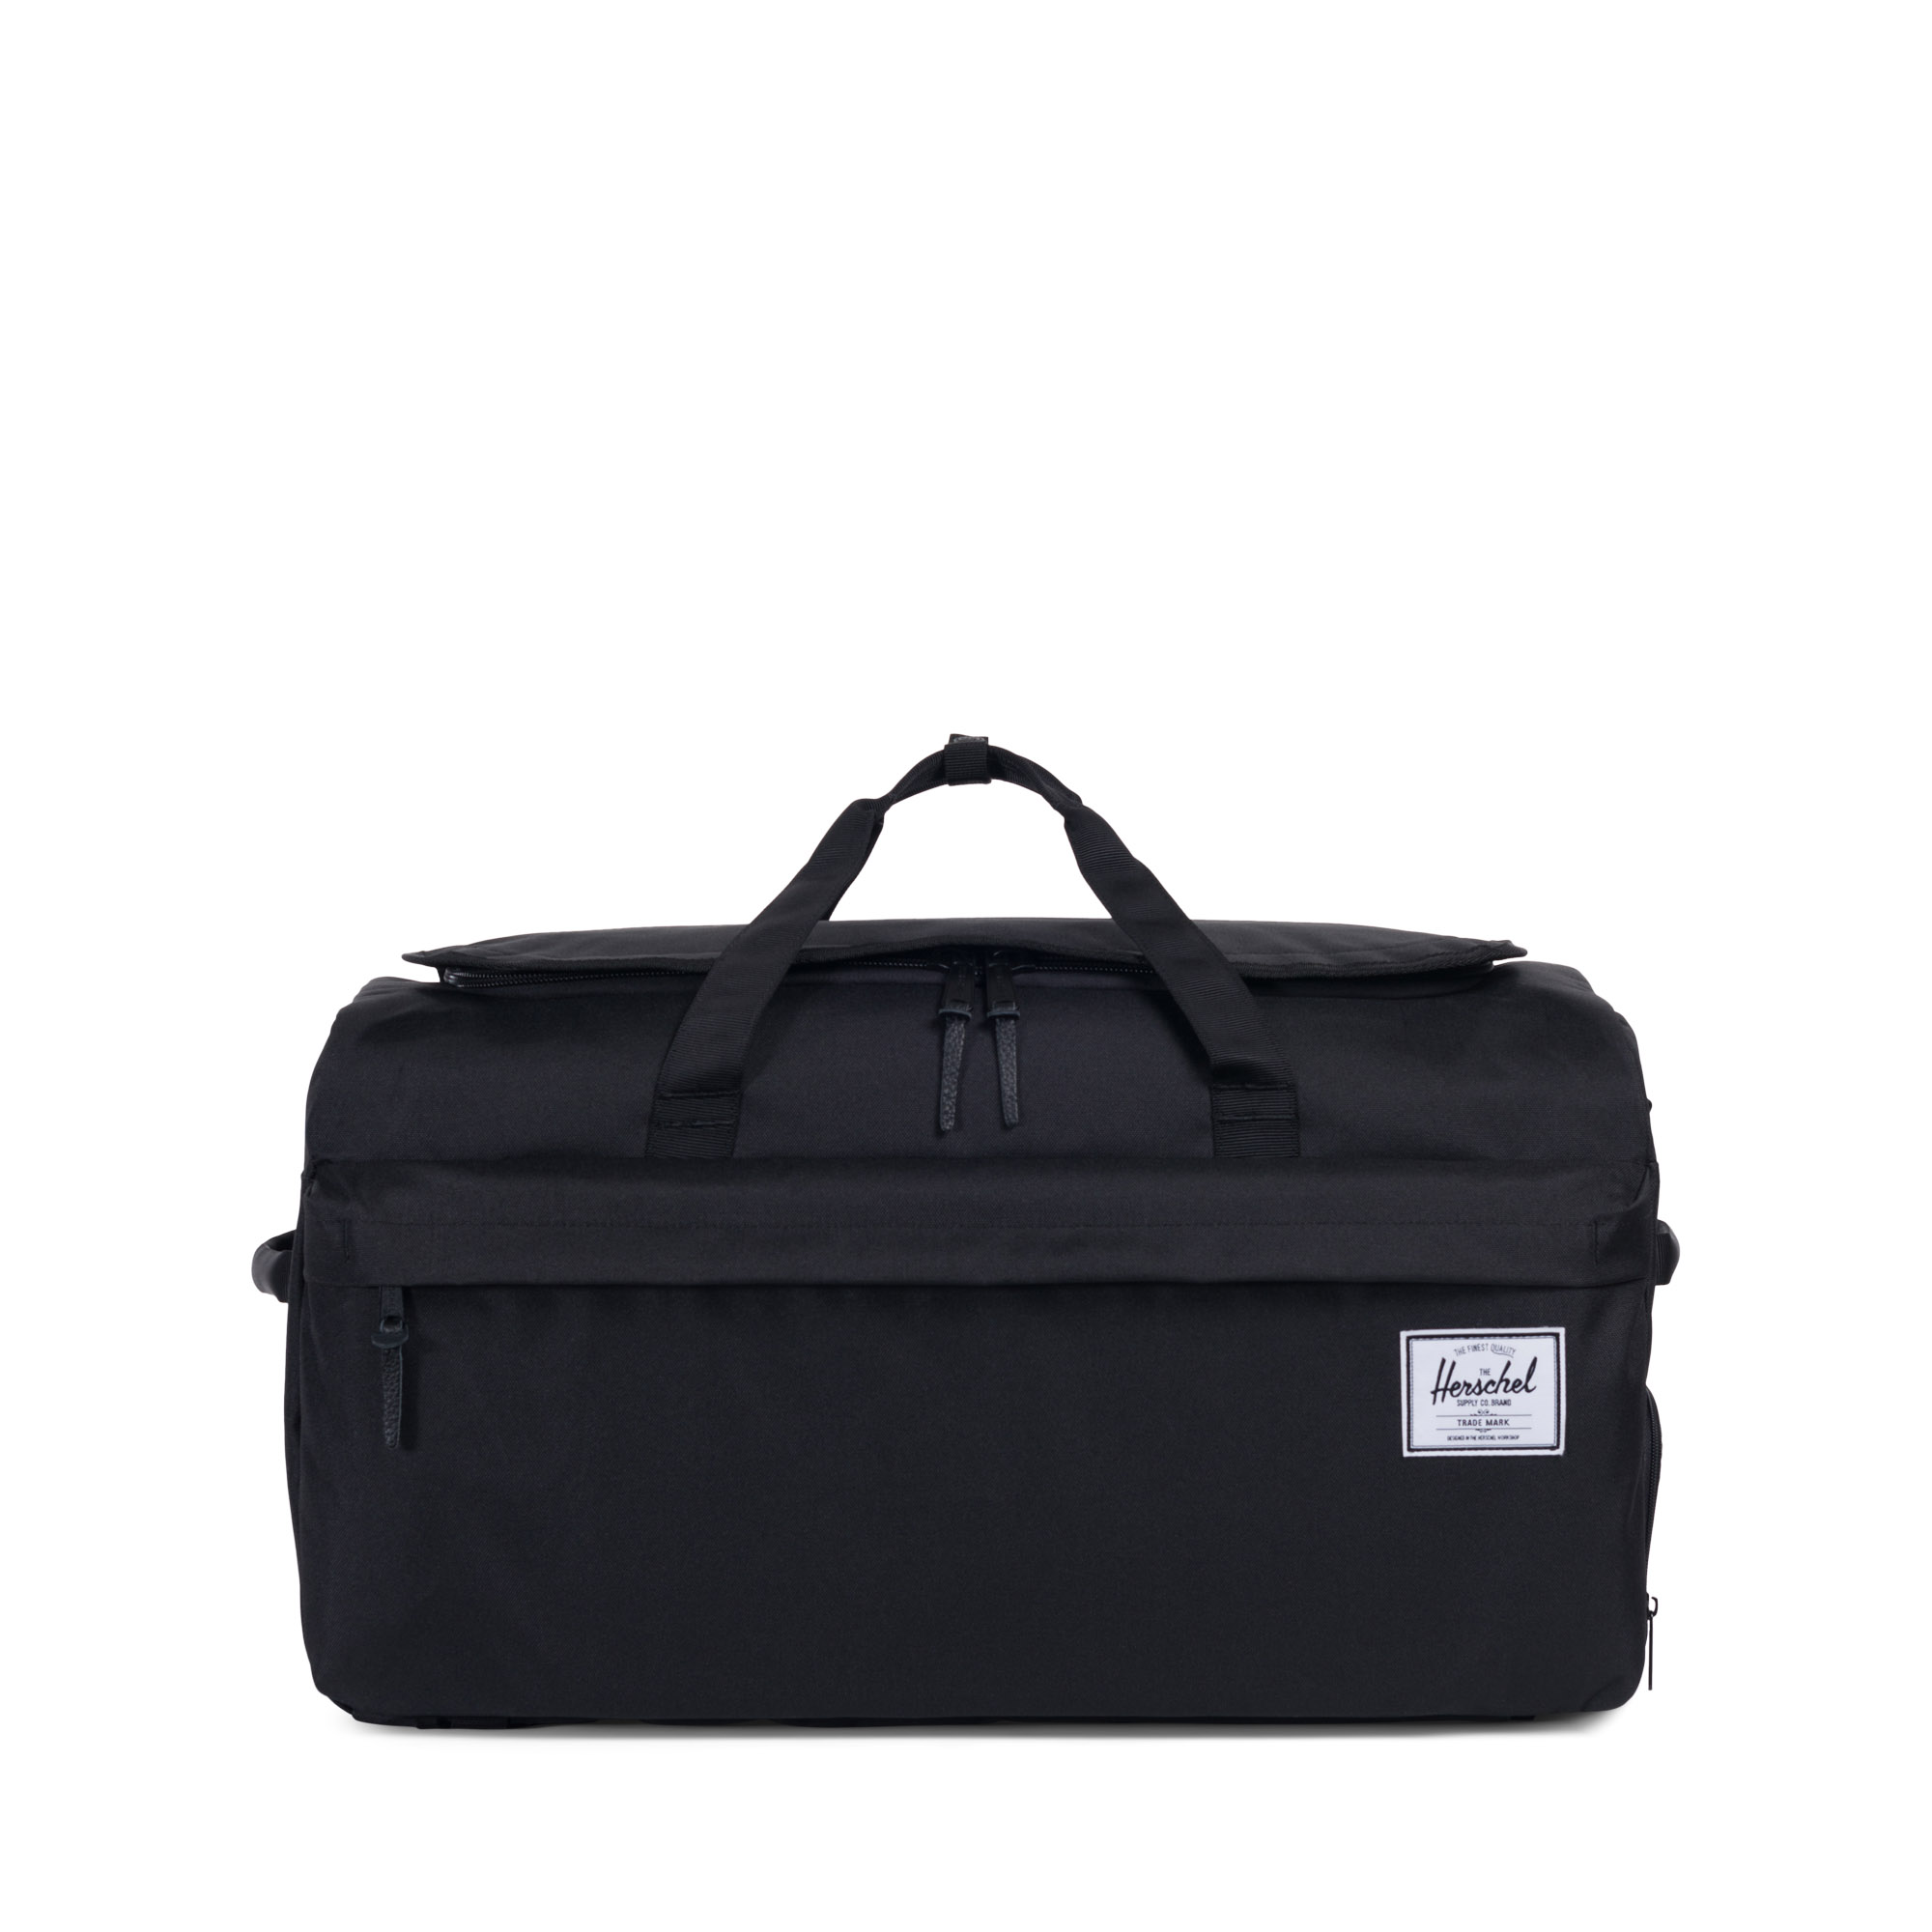 32835cdab25d Outfitter Luggage